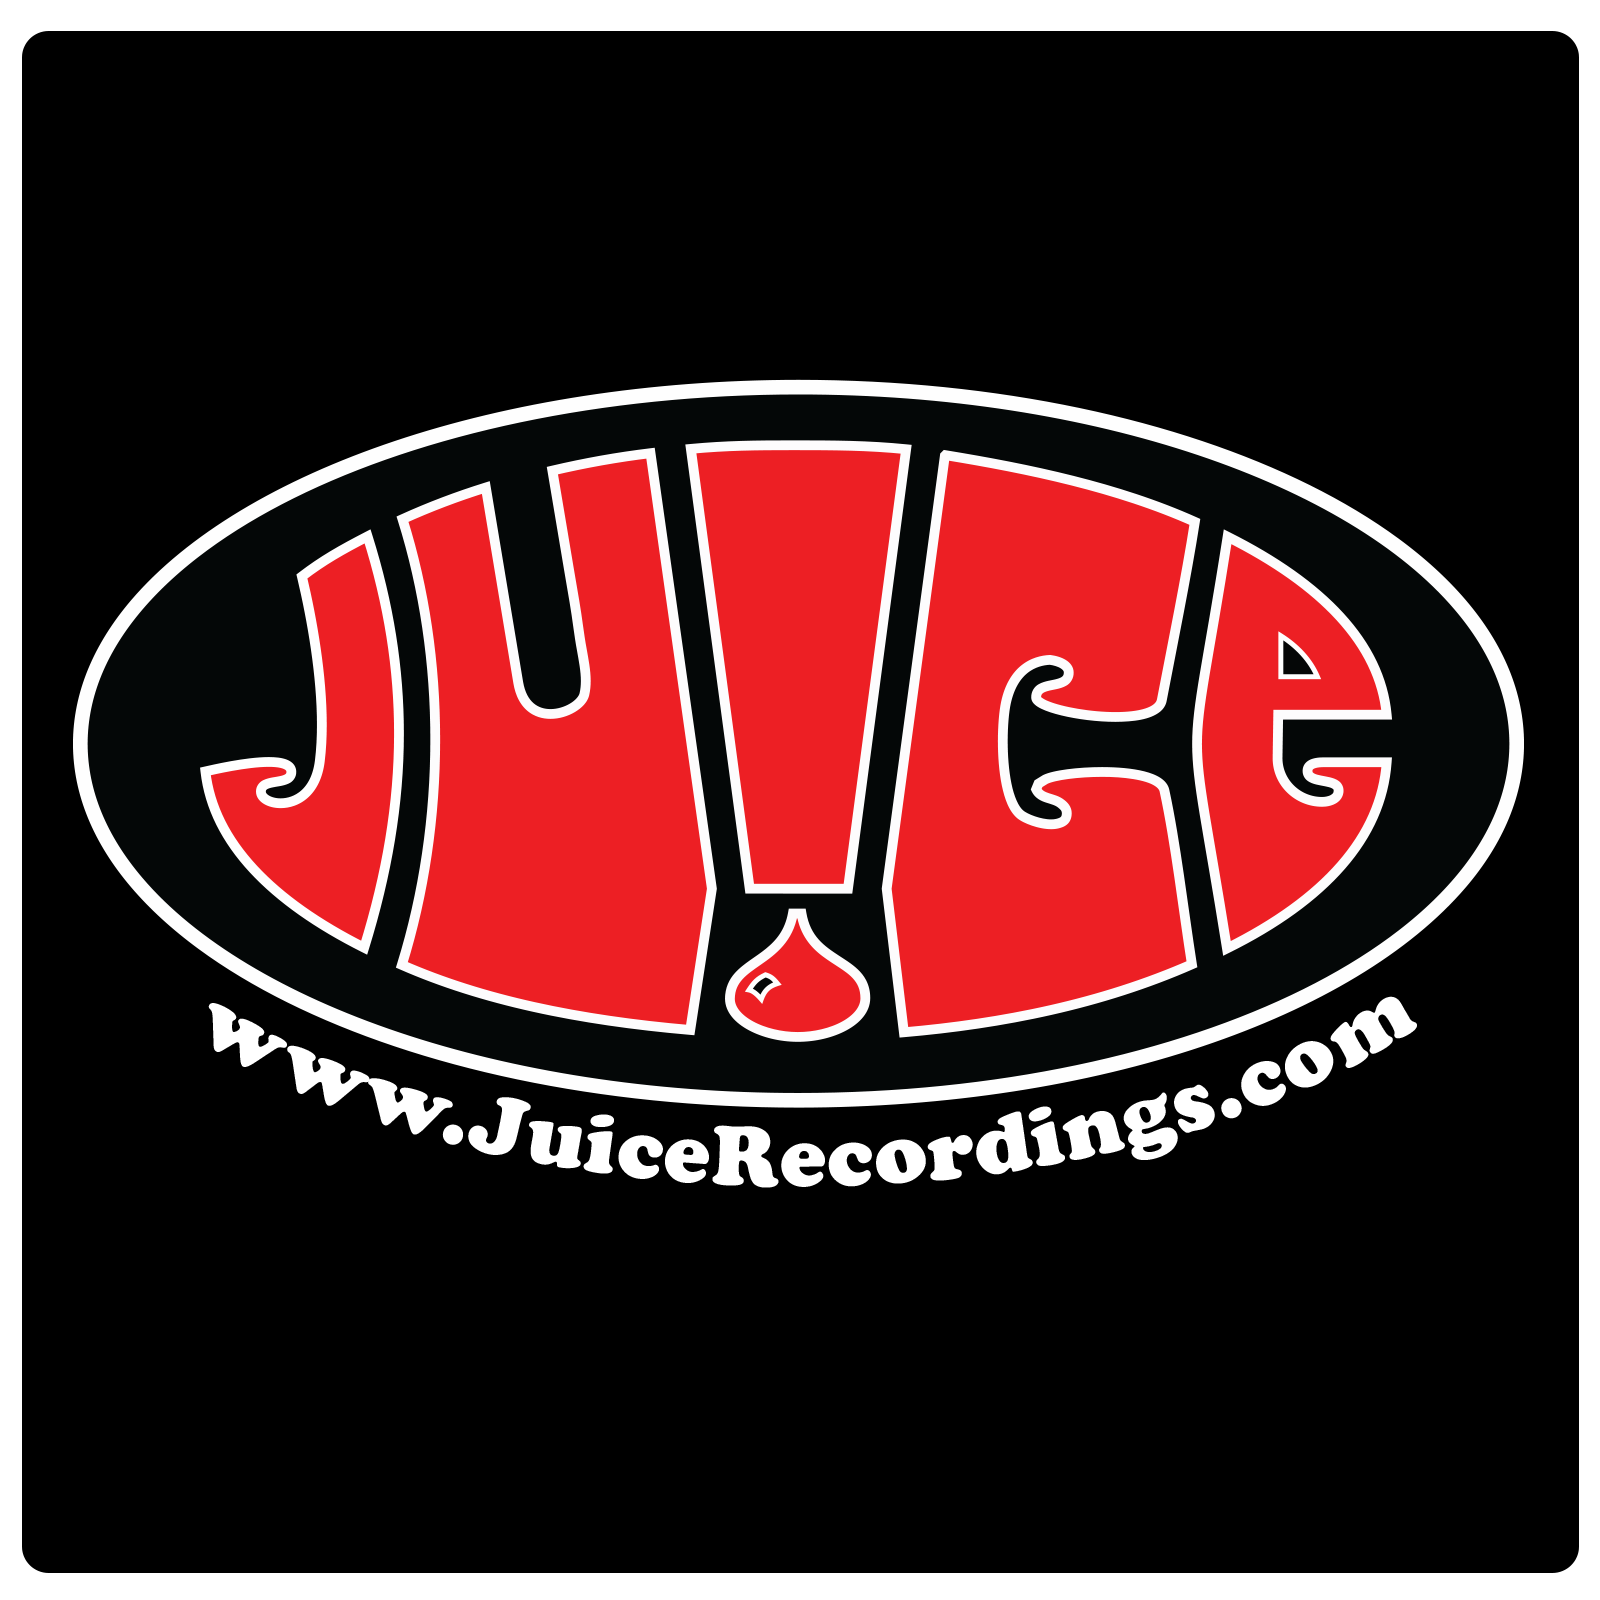 Logo_JuiceRecordings_Classic_BWR_BB_1600x1600_WWW